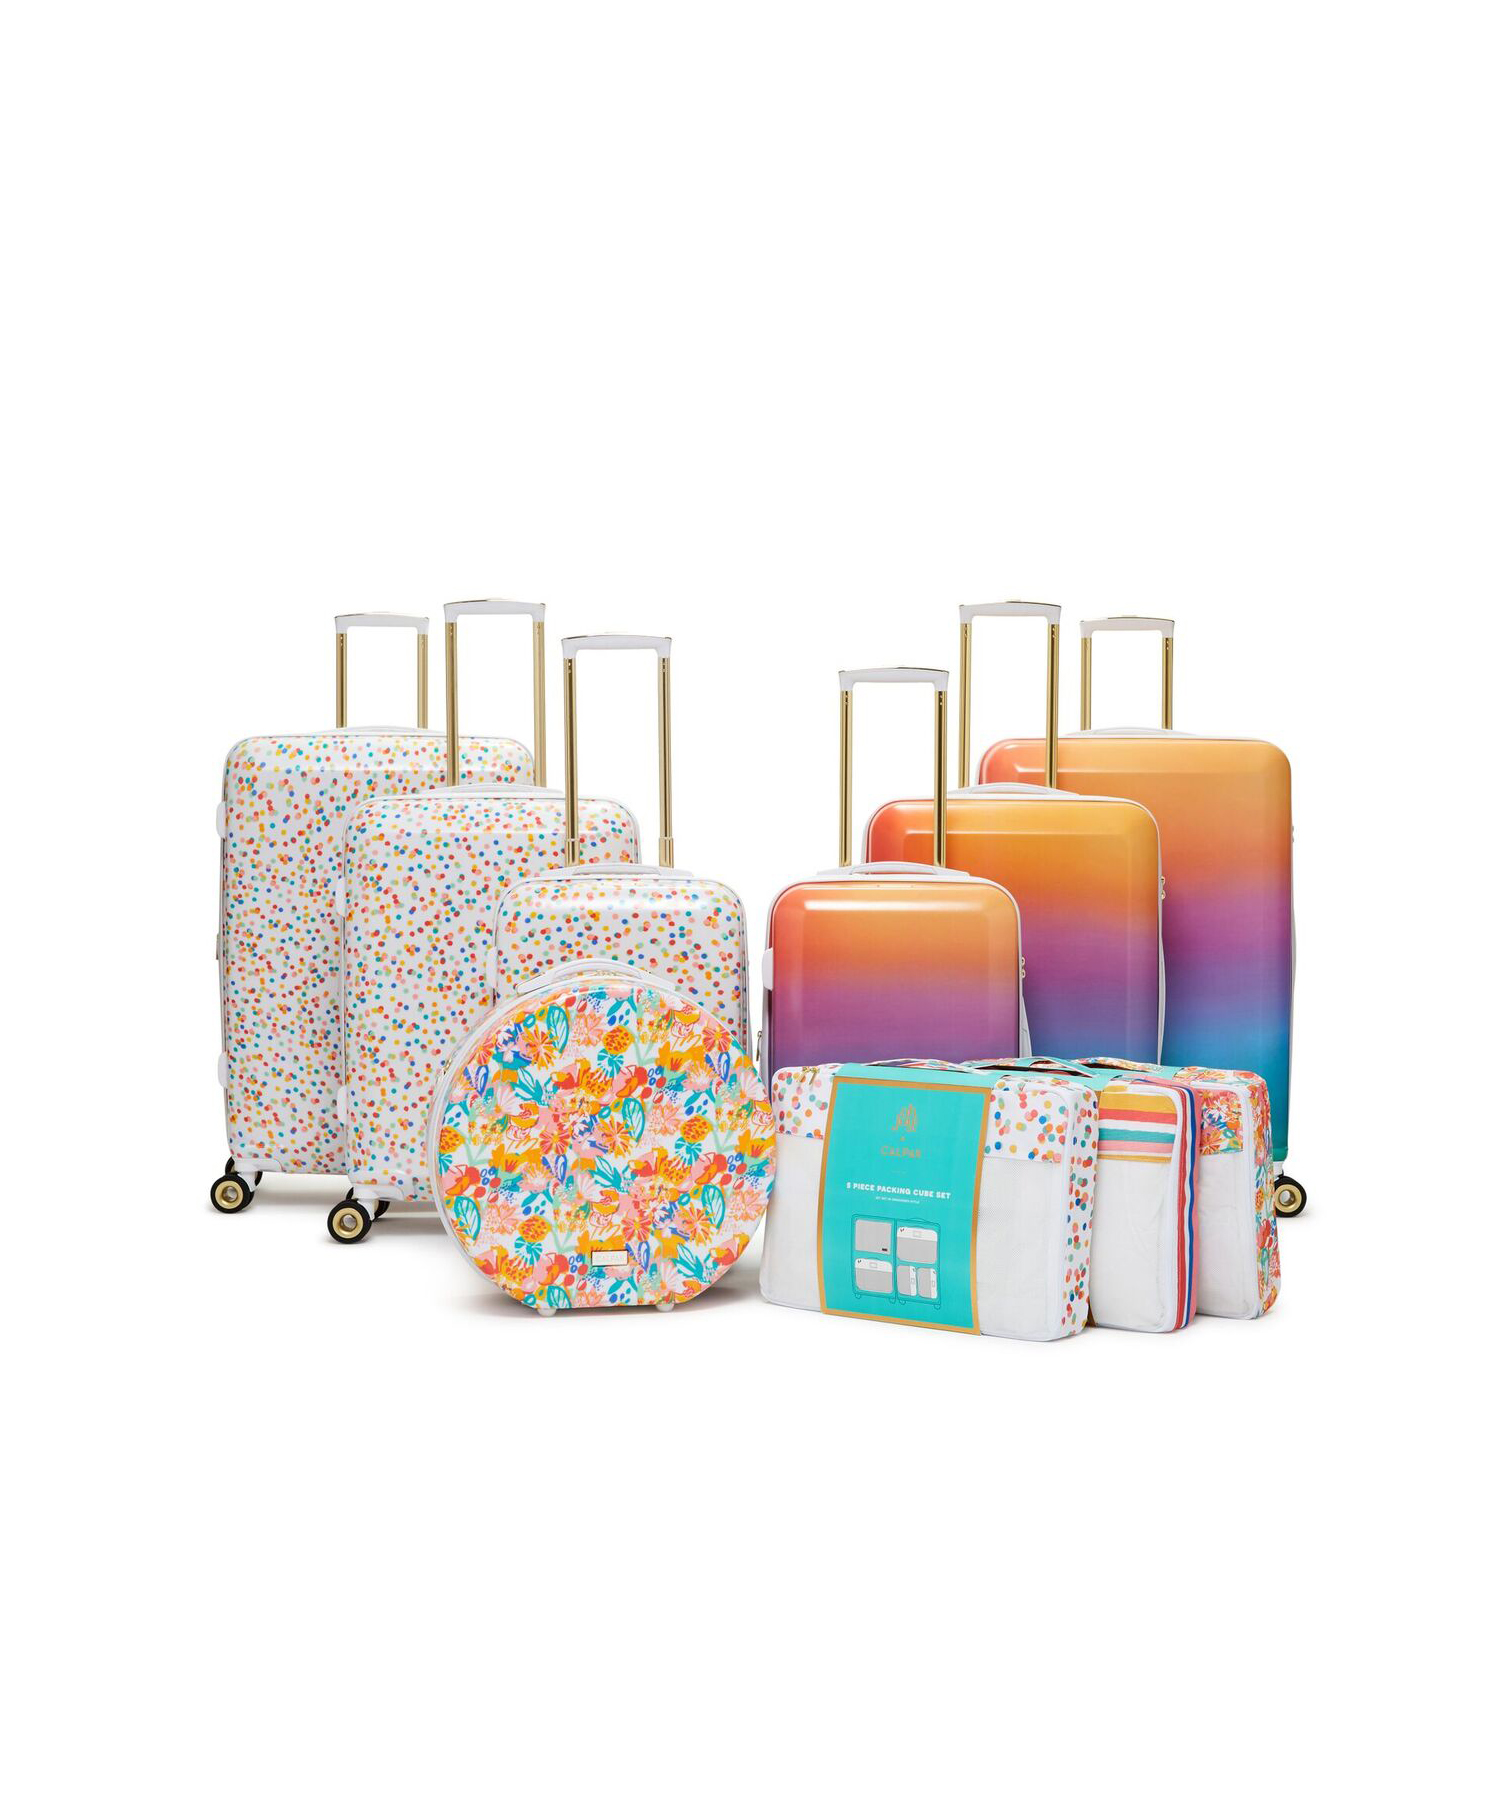 Oh Joy's New Luggage Collection Is What Rainbow Dreams Are Made Of